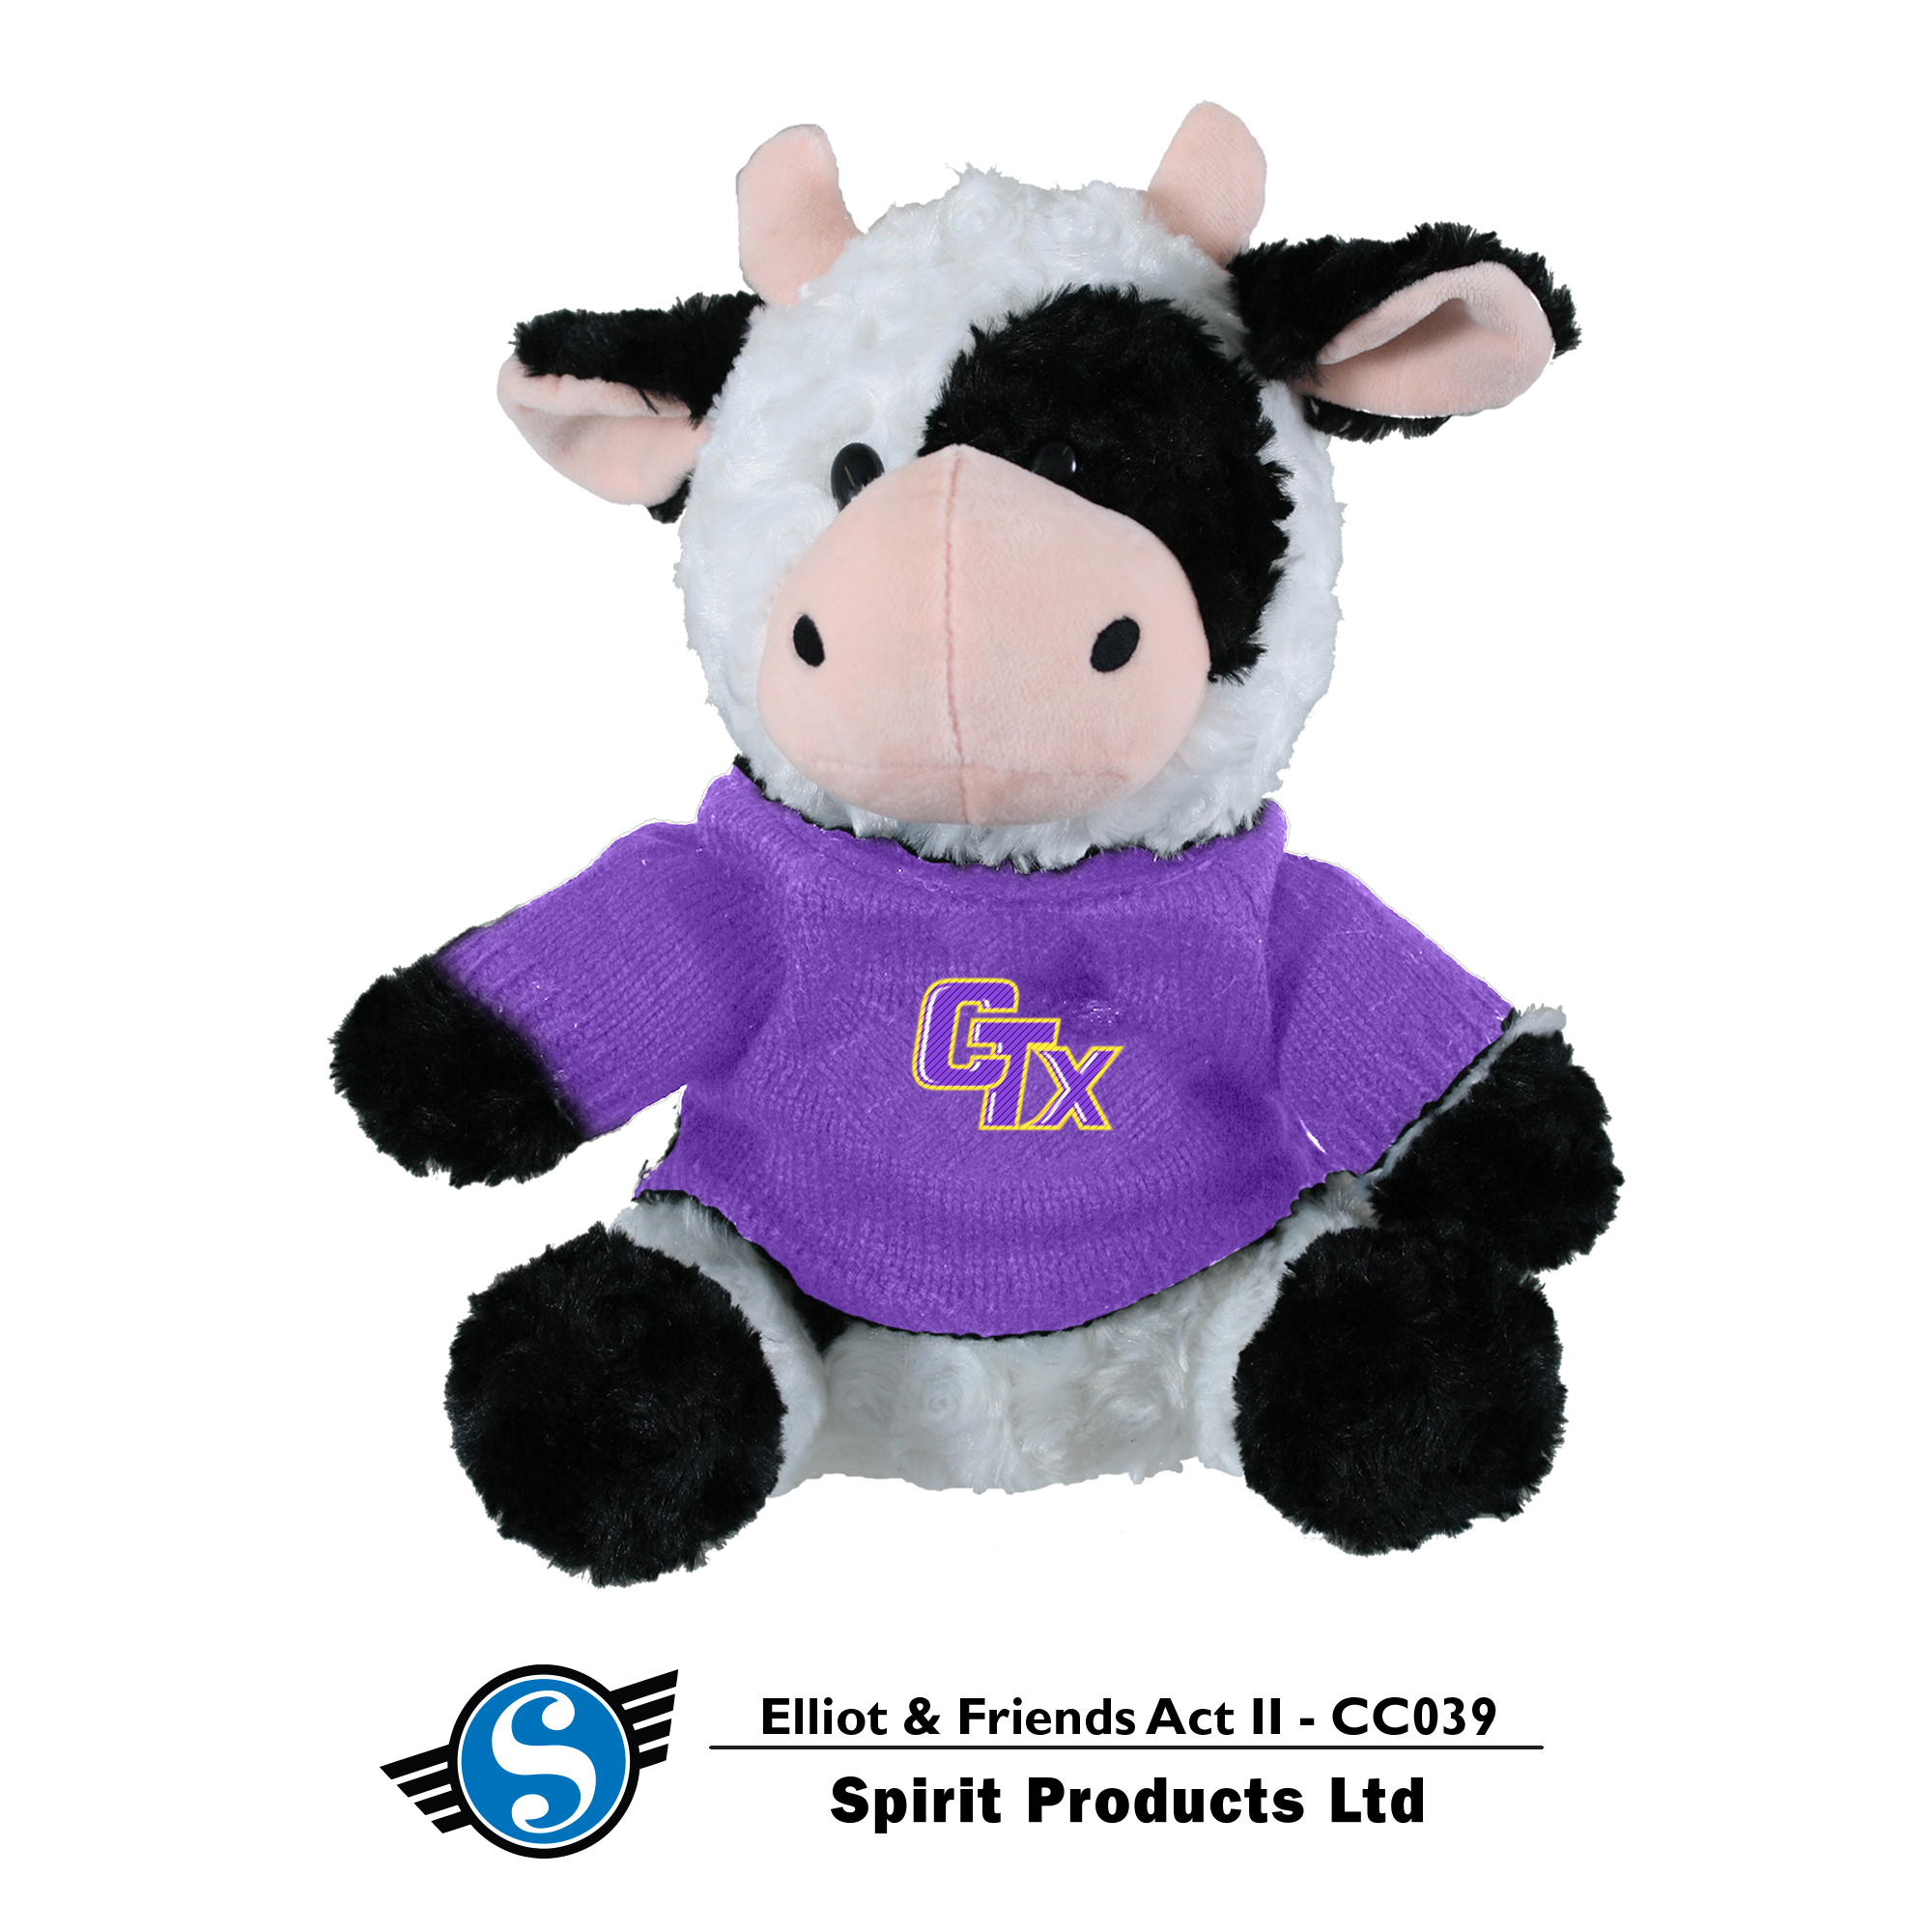 Cow in CTX Sweater - Black and White